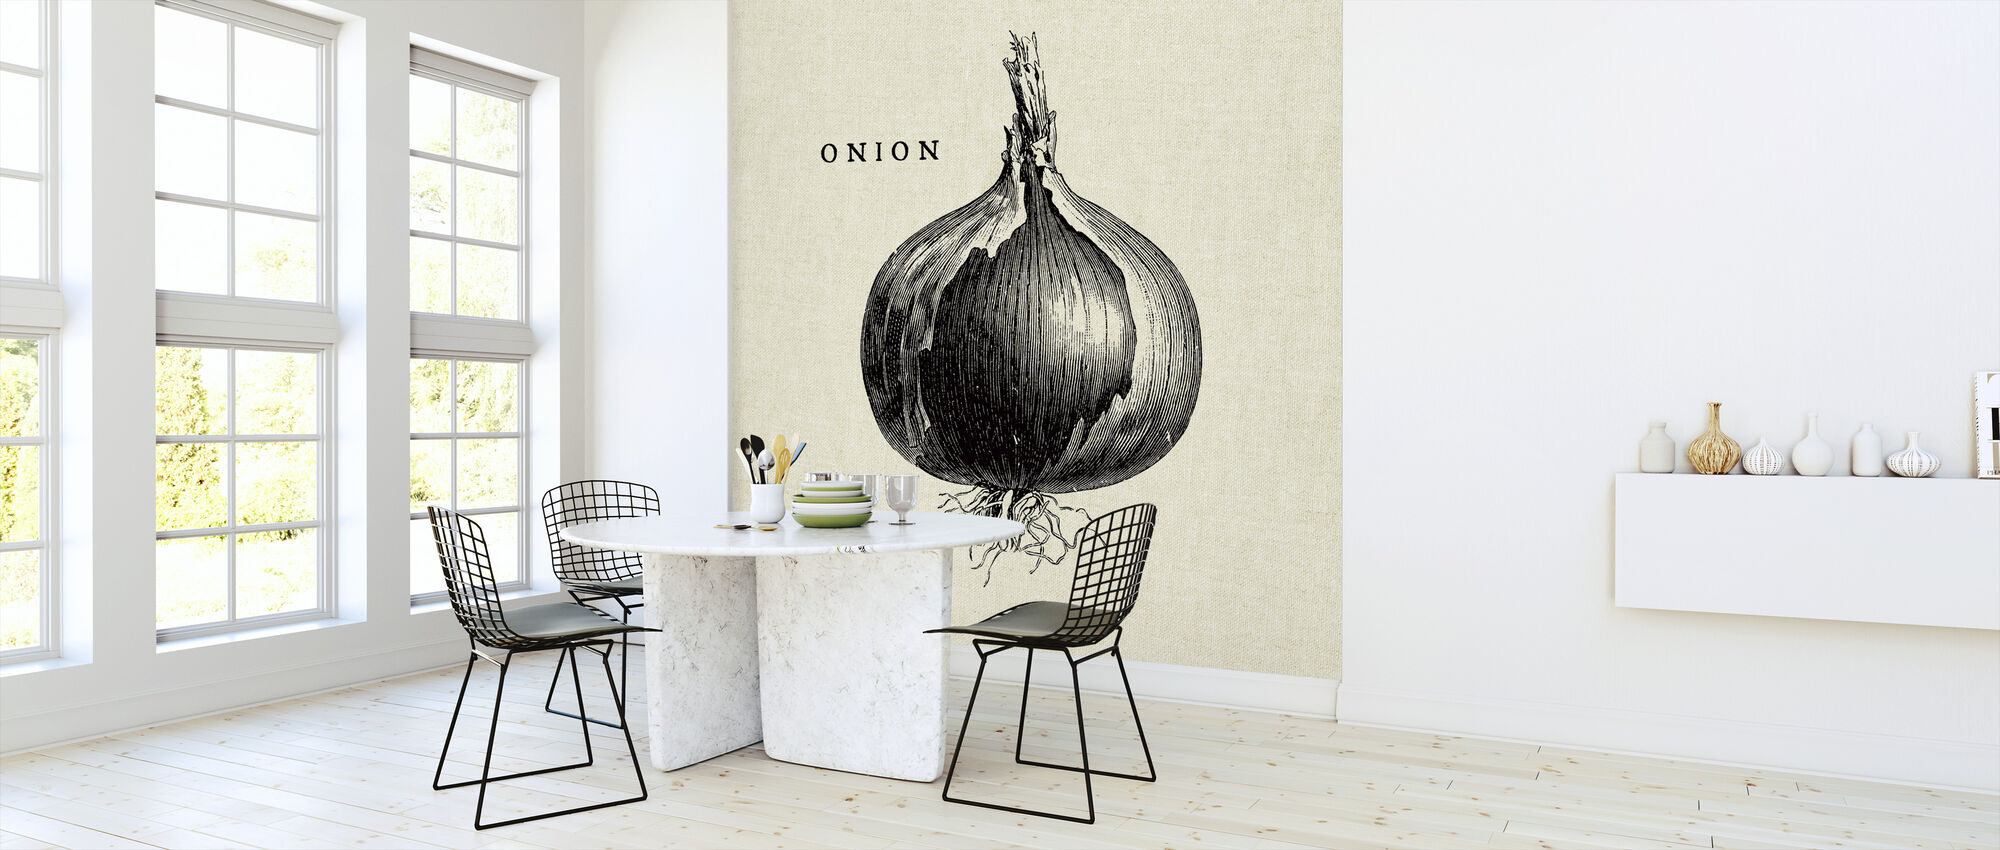 Kitchen Illustration - Onion - Wallpaper - Kitchen